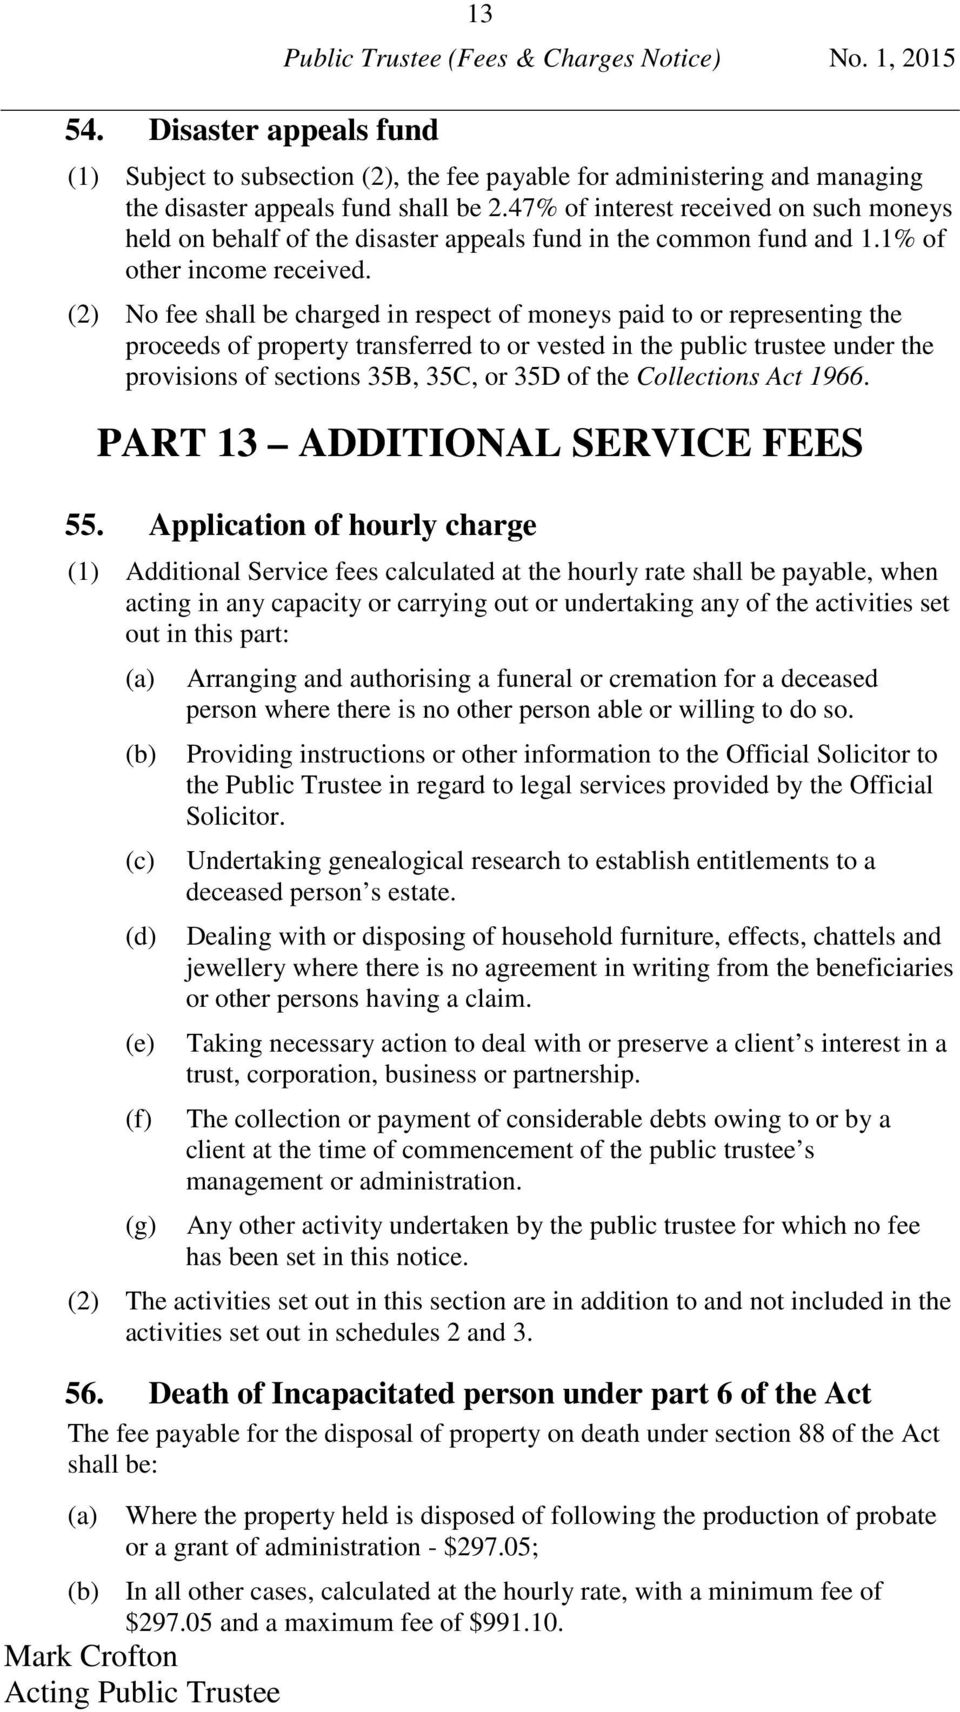 (2) No fee shall be charged in respect of moneys paid to or representing the proceeds of property transferred to or vested in the public trustee under the provisions of sections 35B, 35C, or 35D of